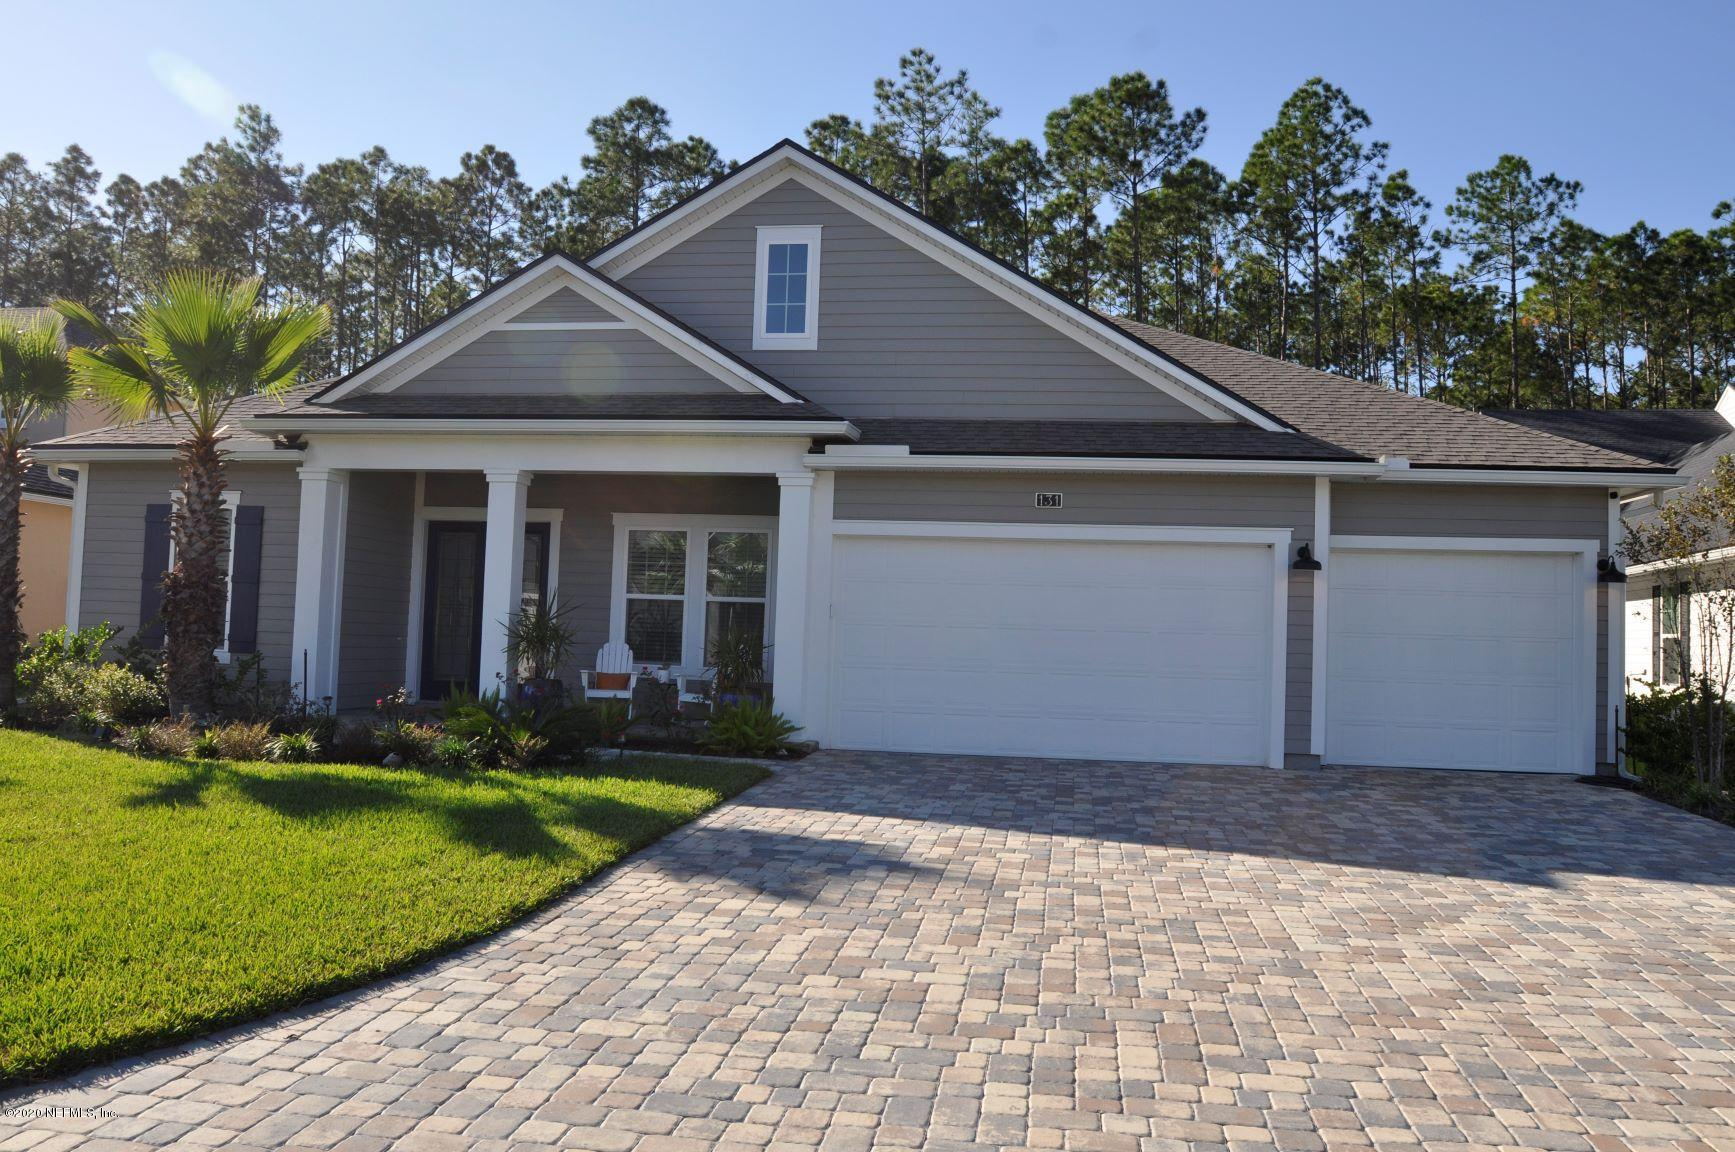 131 COPPINGER, ST JOHNS, FLORIDA 32259, 4 Bedrooms Bedrooms, ,4 BathroomsBathrooms,Residential,For sale,COPPINGER,1081849